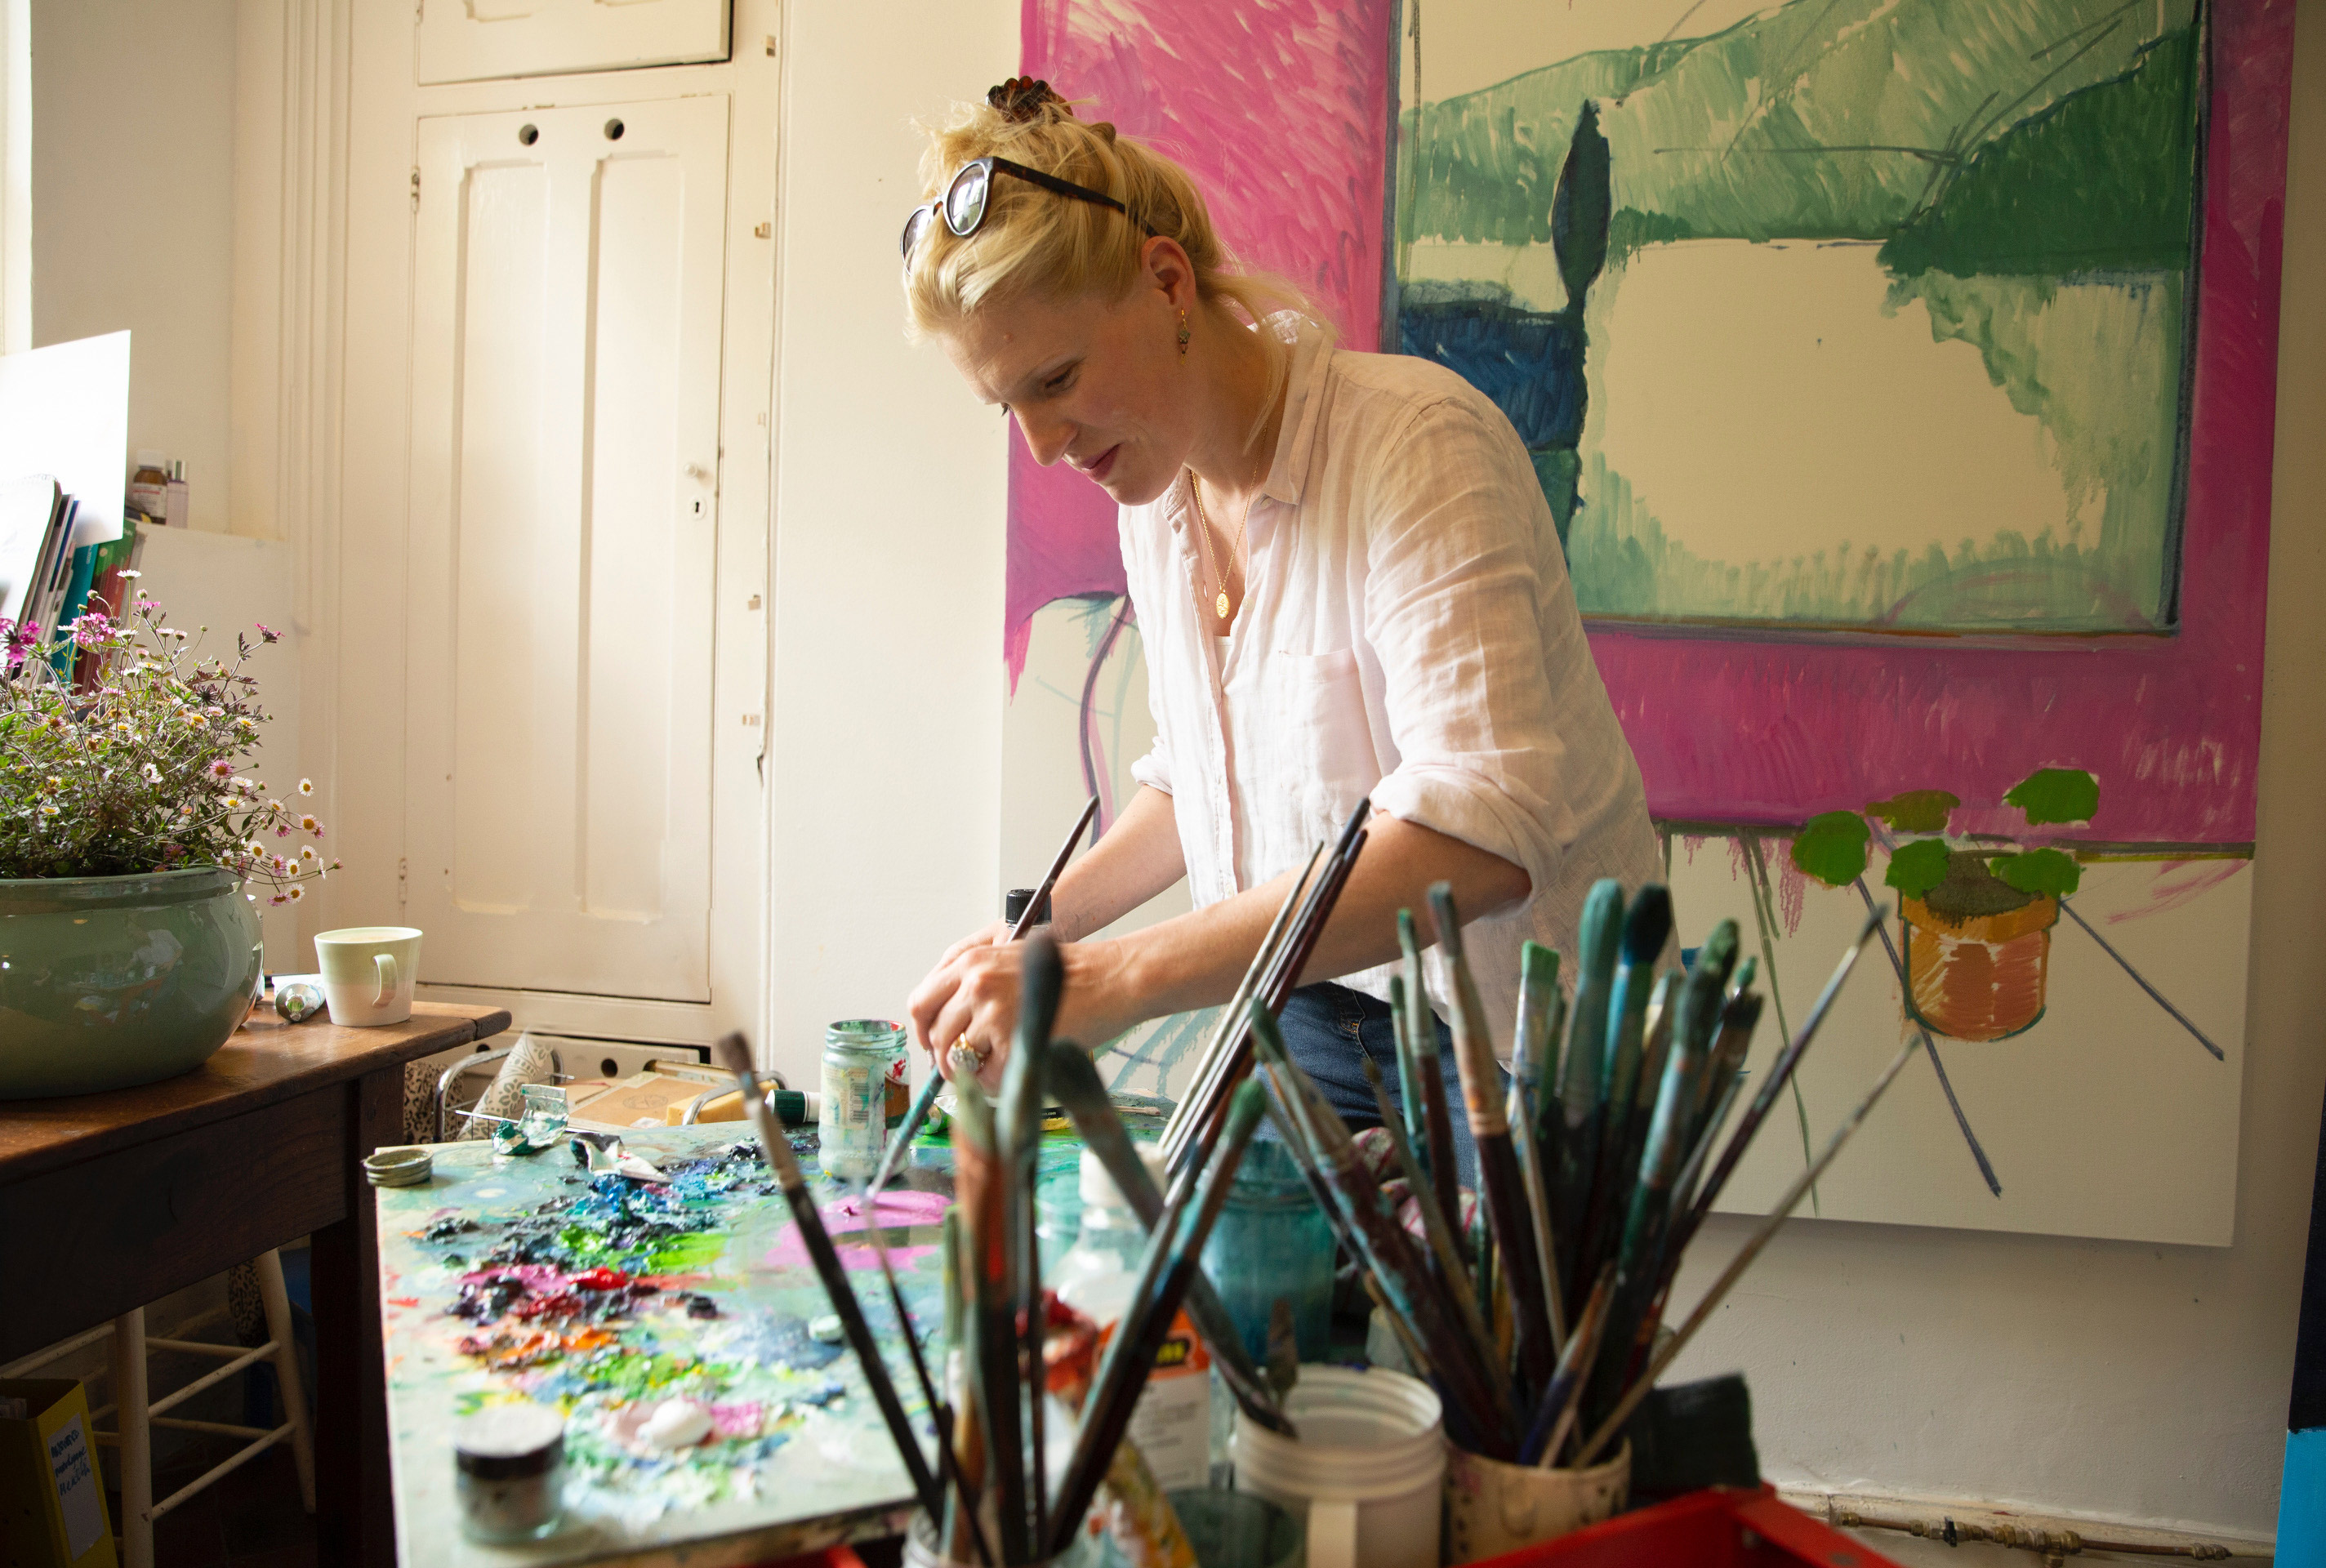 British Artist Nancy Cadogan On Life Behind The Canvas As a Mother of Three